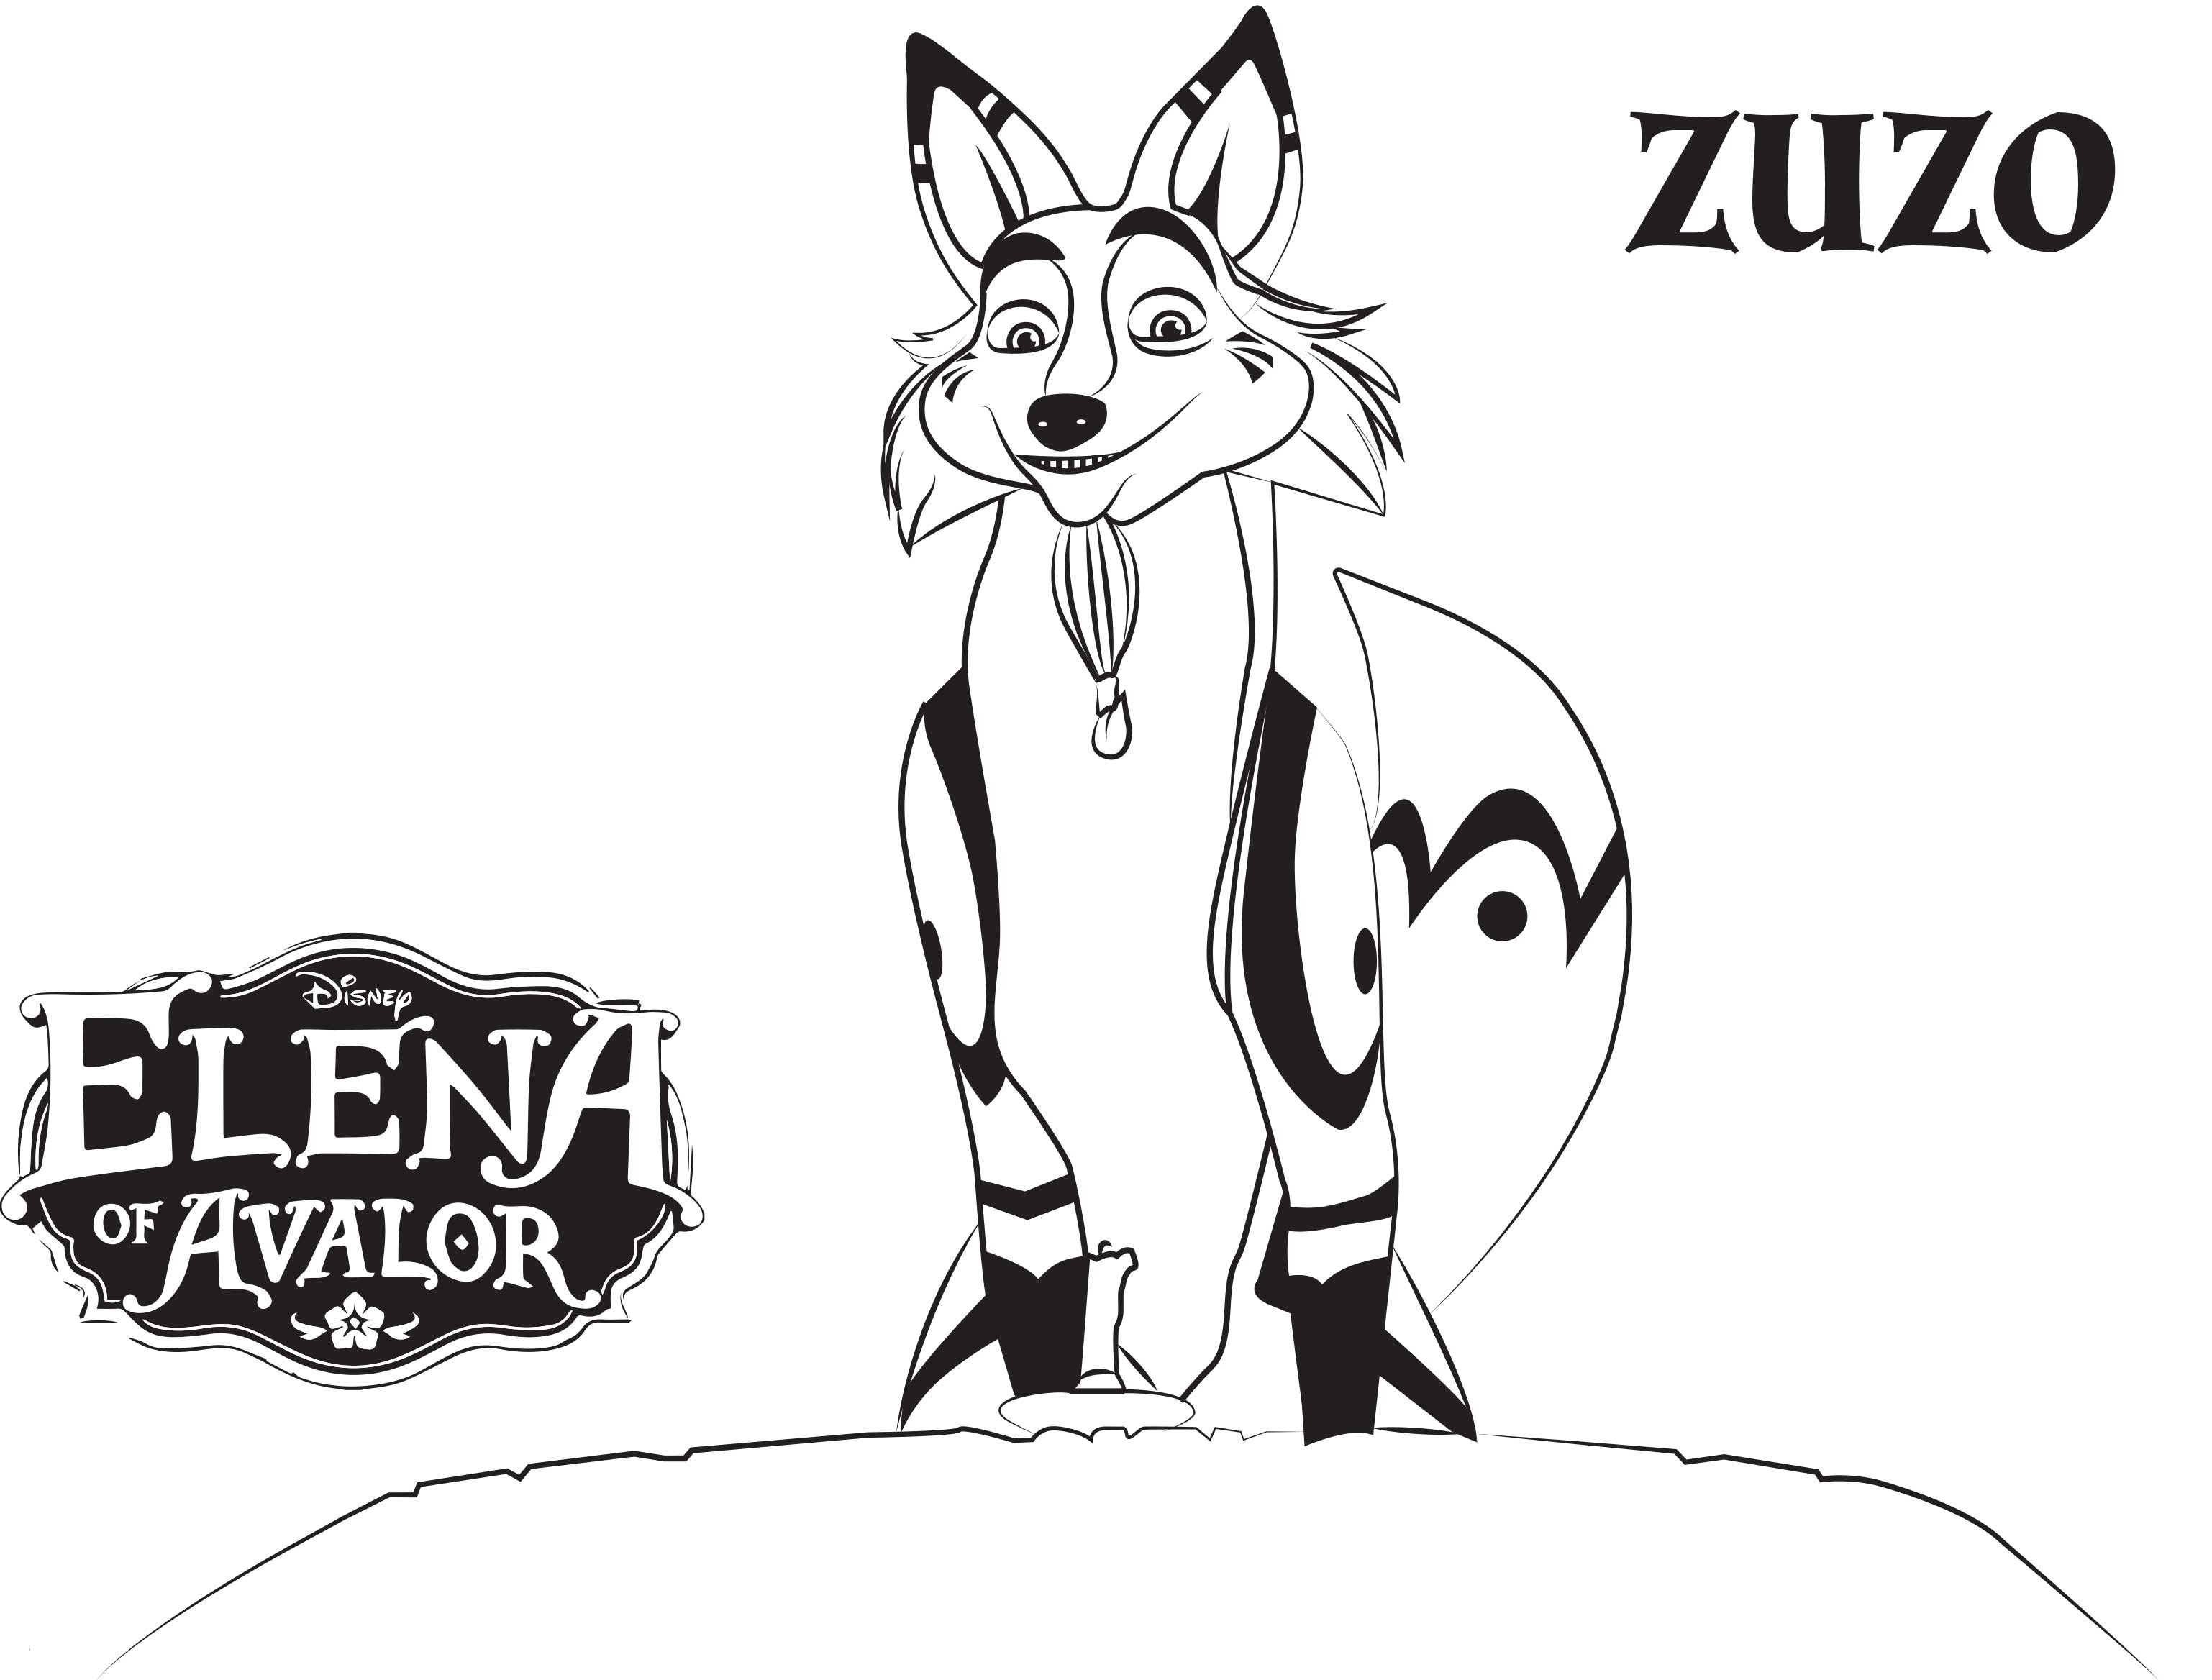 elena of avalor coloring pages to print Download-Elena Avalor Coloring Pages Free Elena Avalor Coloring Pages to Print Lovely Elena Avalor Coloring 14-k